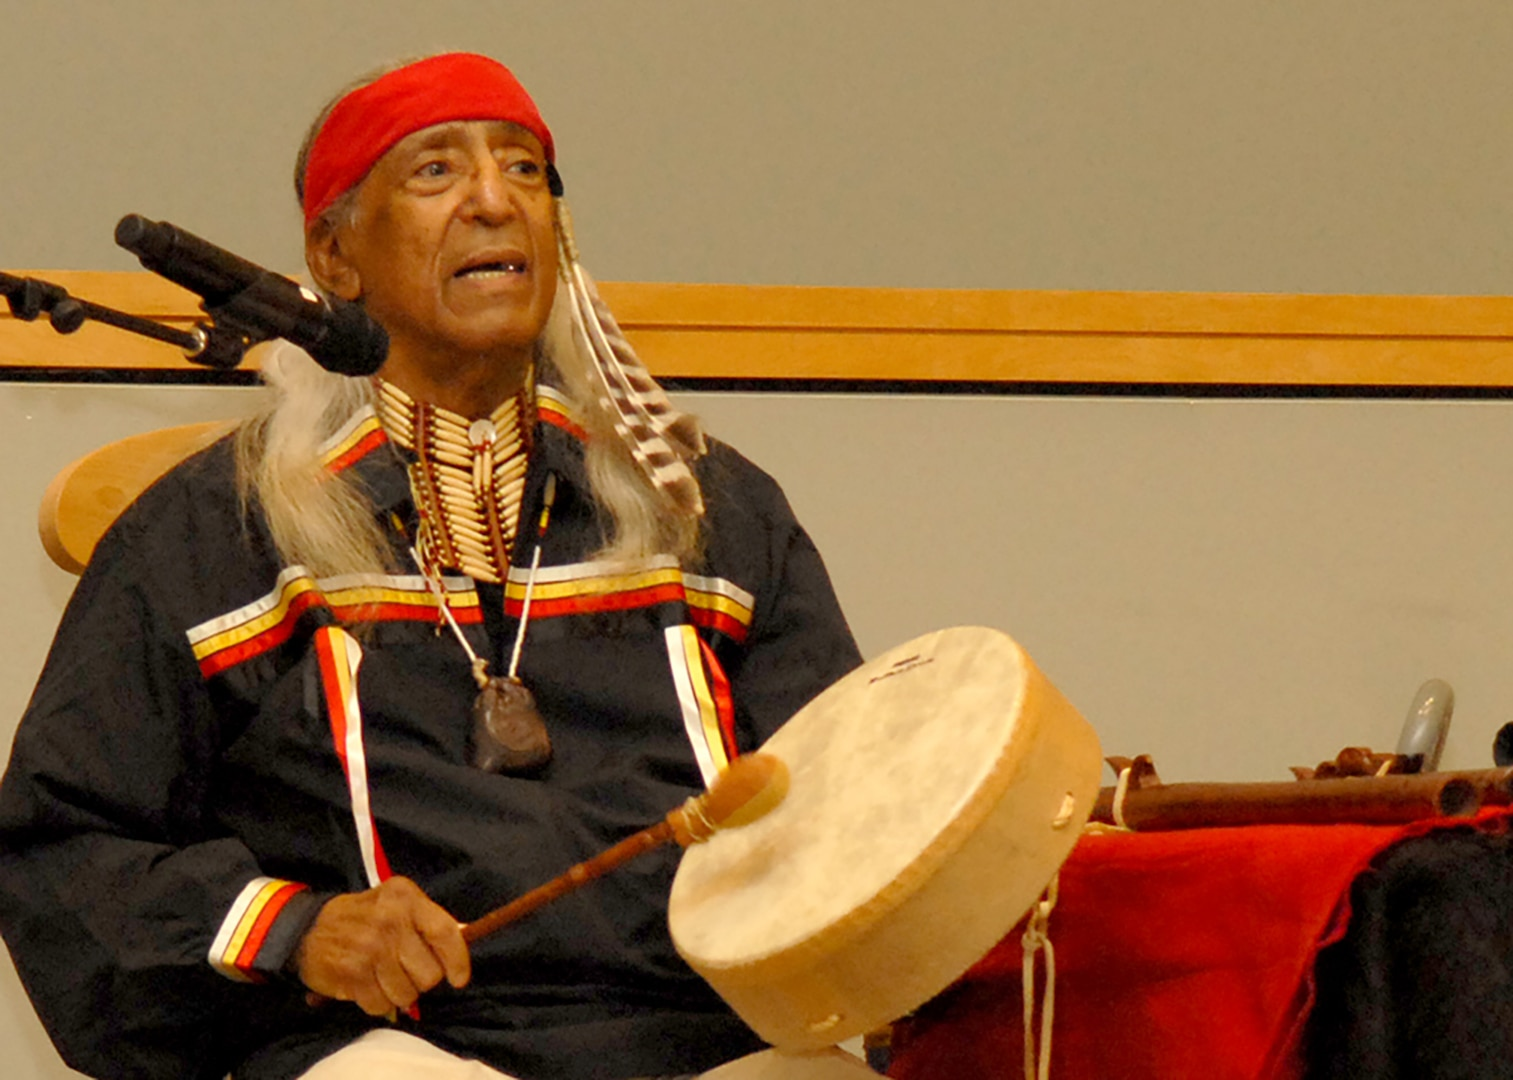 Kenneth Little Hawk, a descendent of the Micmac and Mohawk tribes, performs a song during the National American Indian Heritage Month program Nov. 14. Little Hawk encouraged the Naval Support Activity Philadelphia audience to accept people of all colors and creeds.